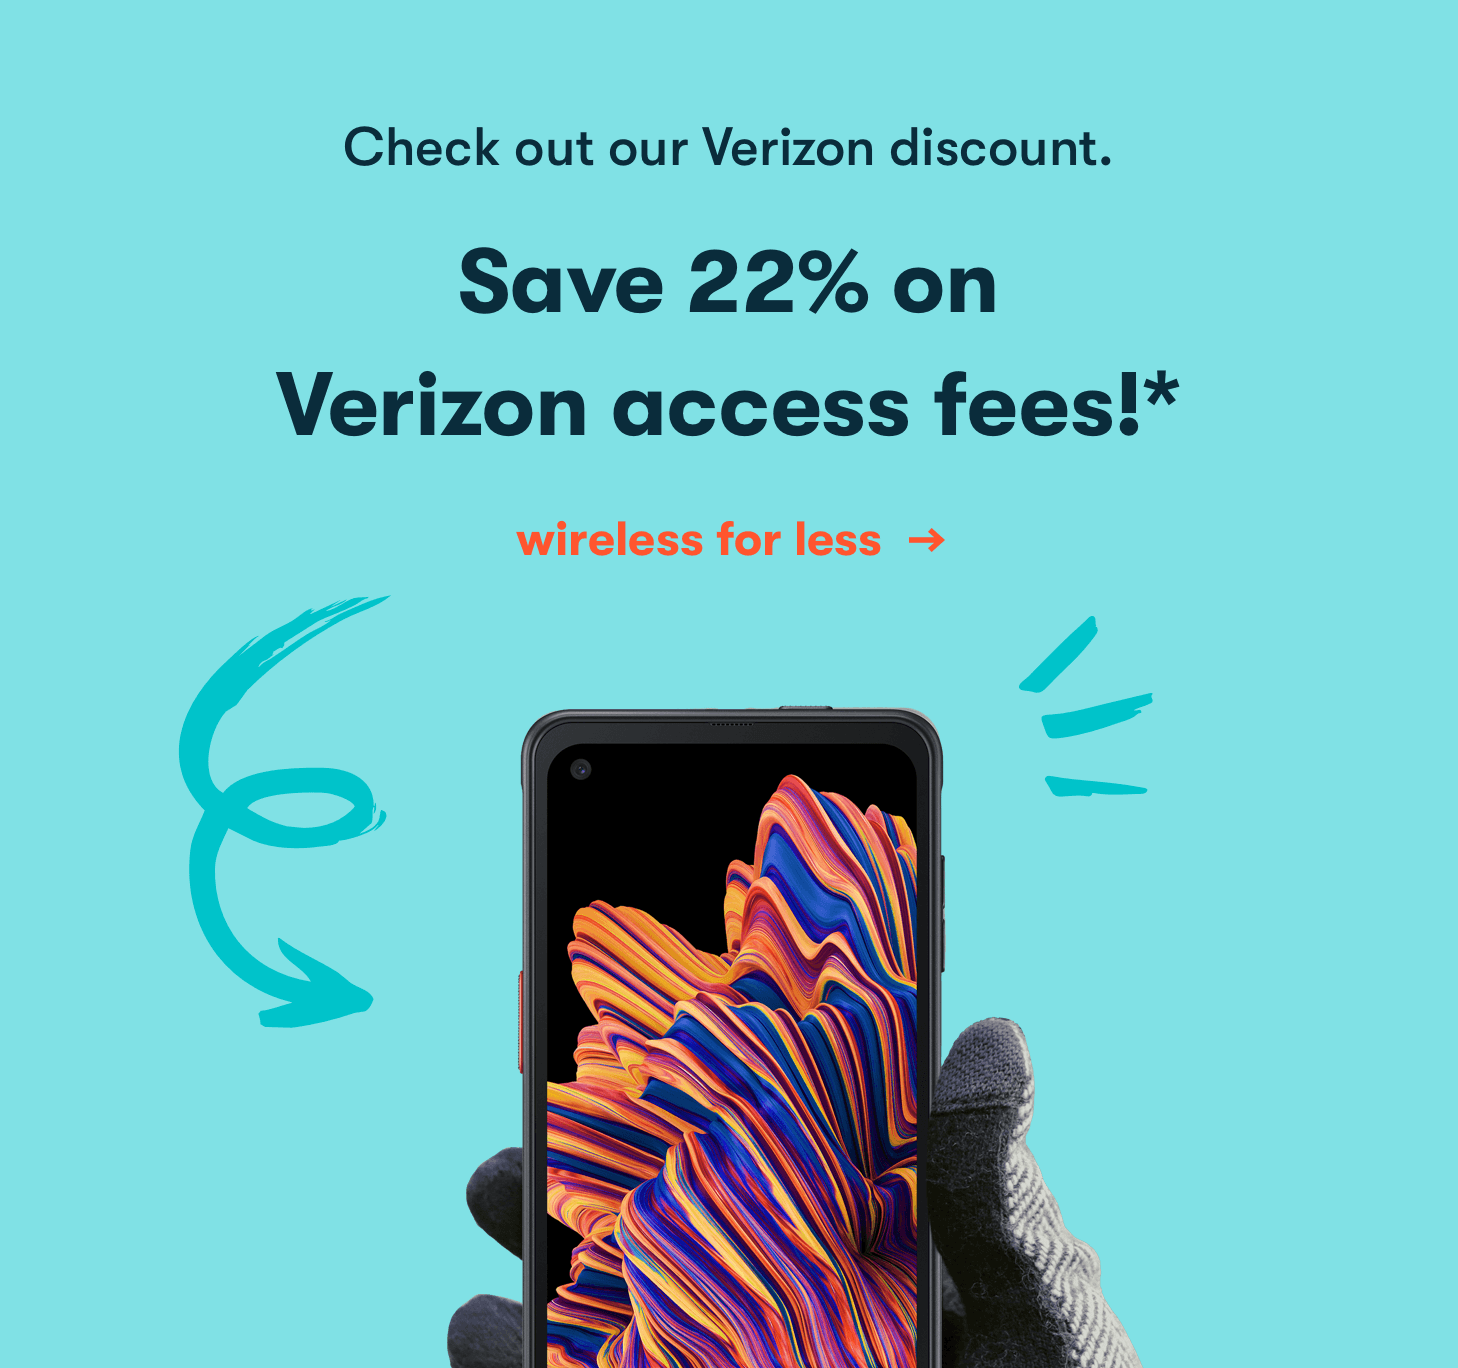 Check out our Verizon discount. Save 22% on 